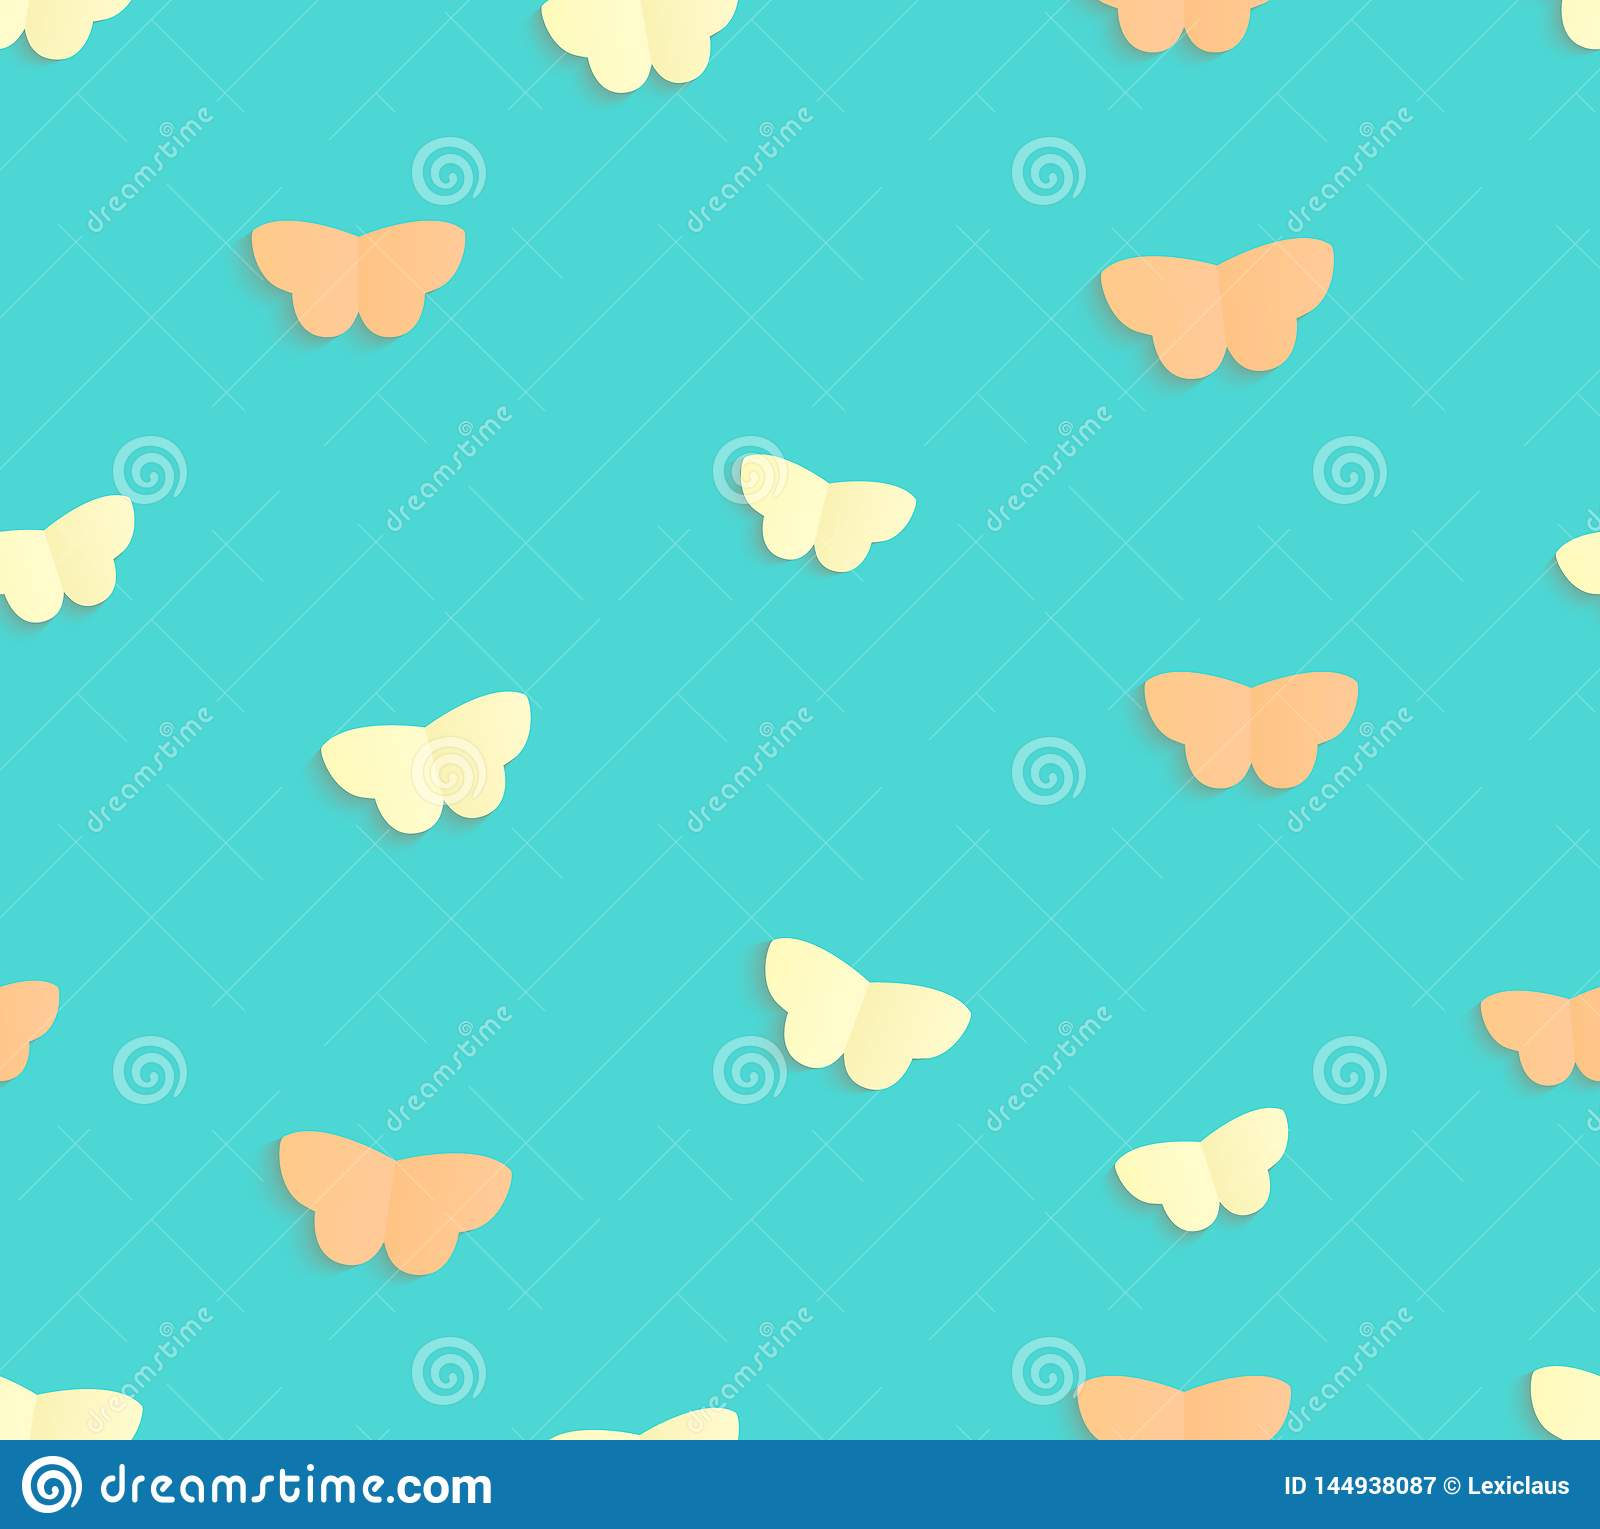 Vector seamless pattern of paper cut butterflies